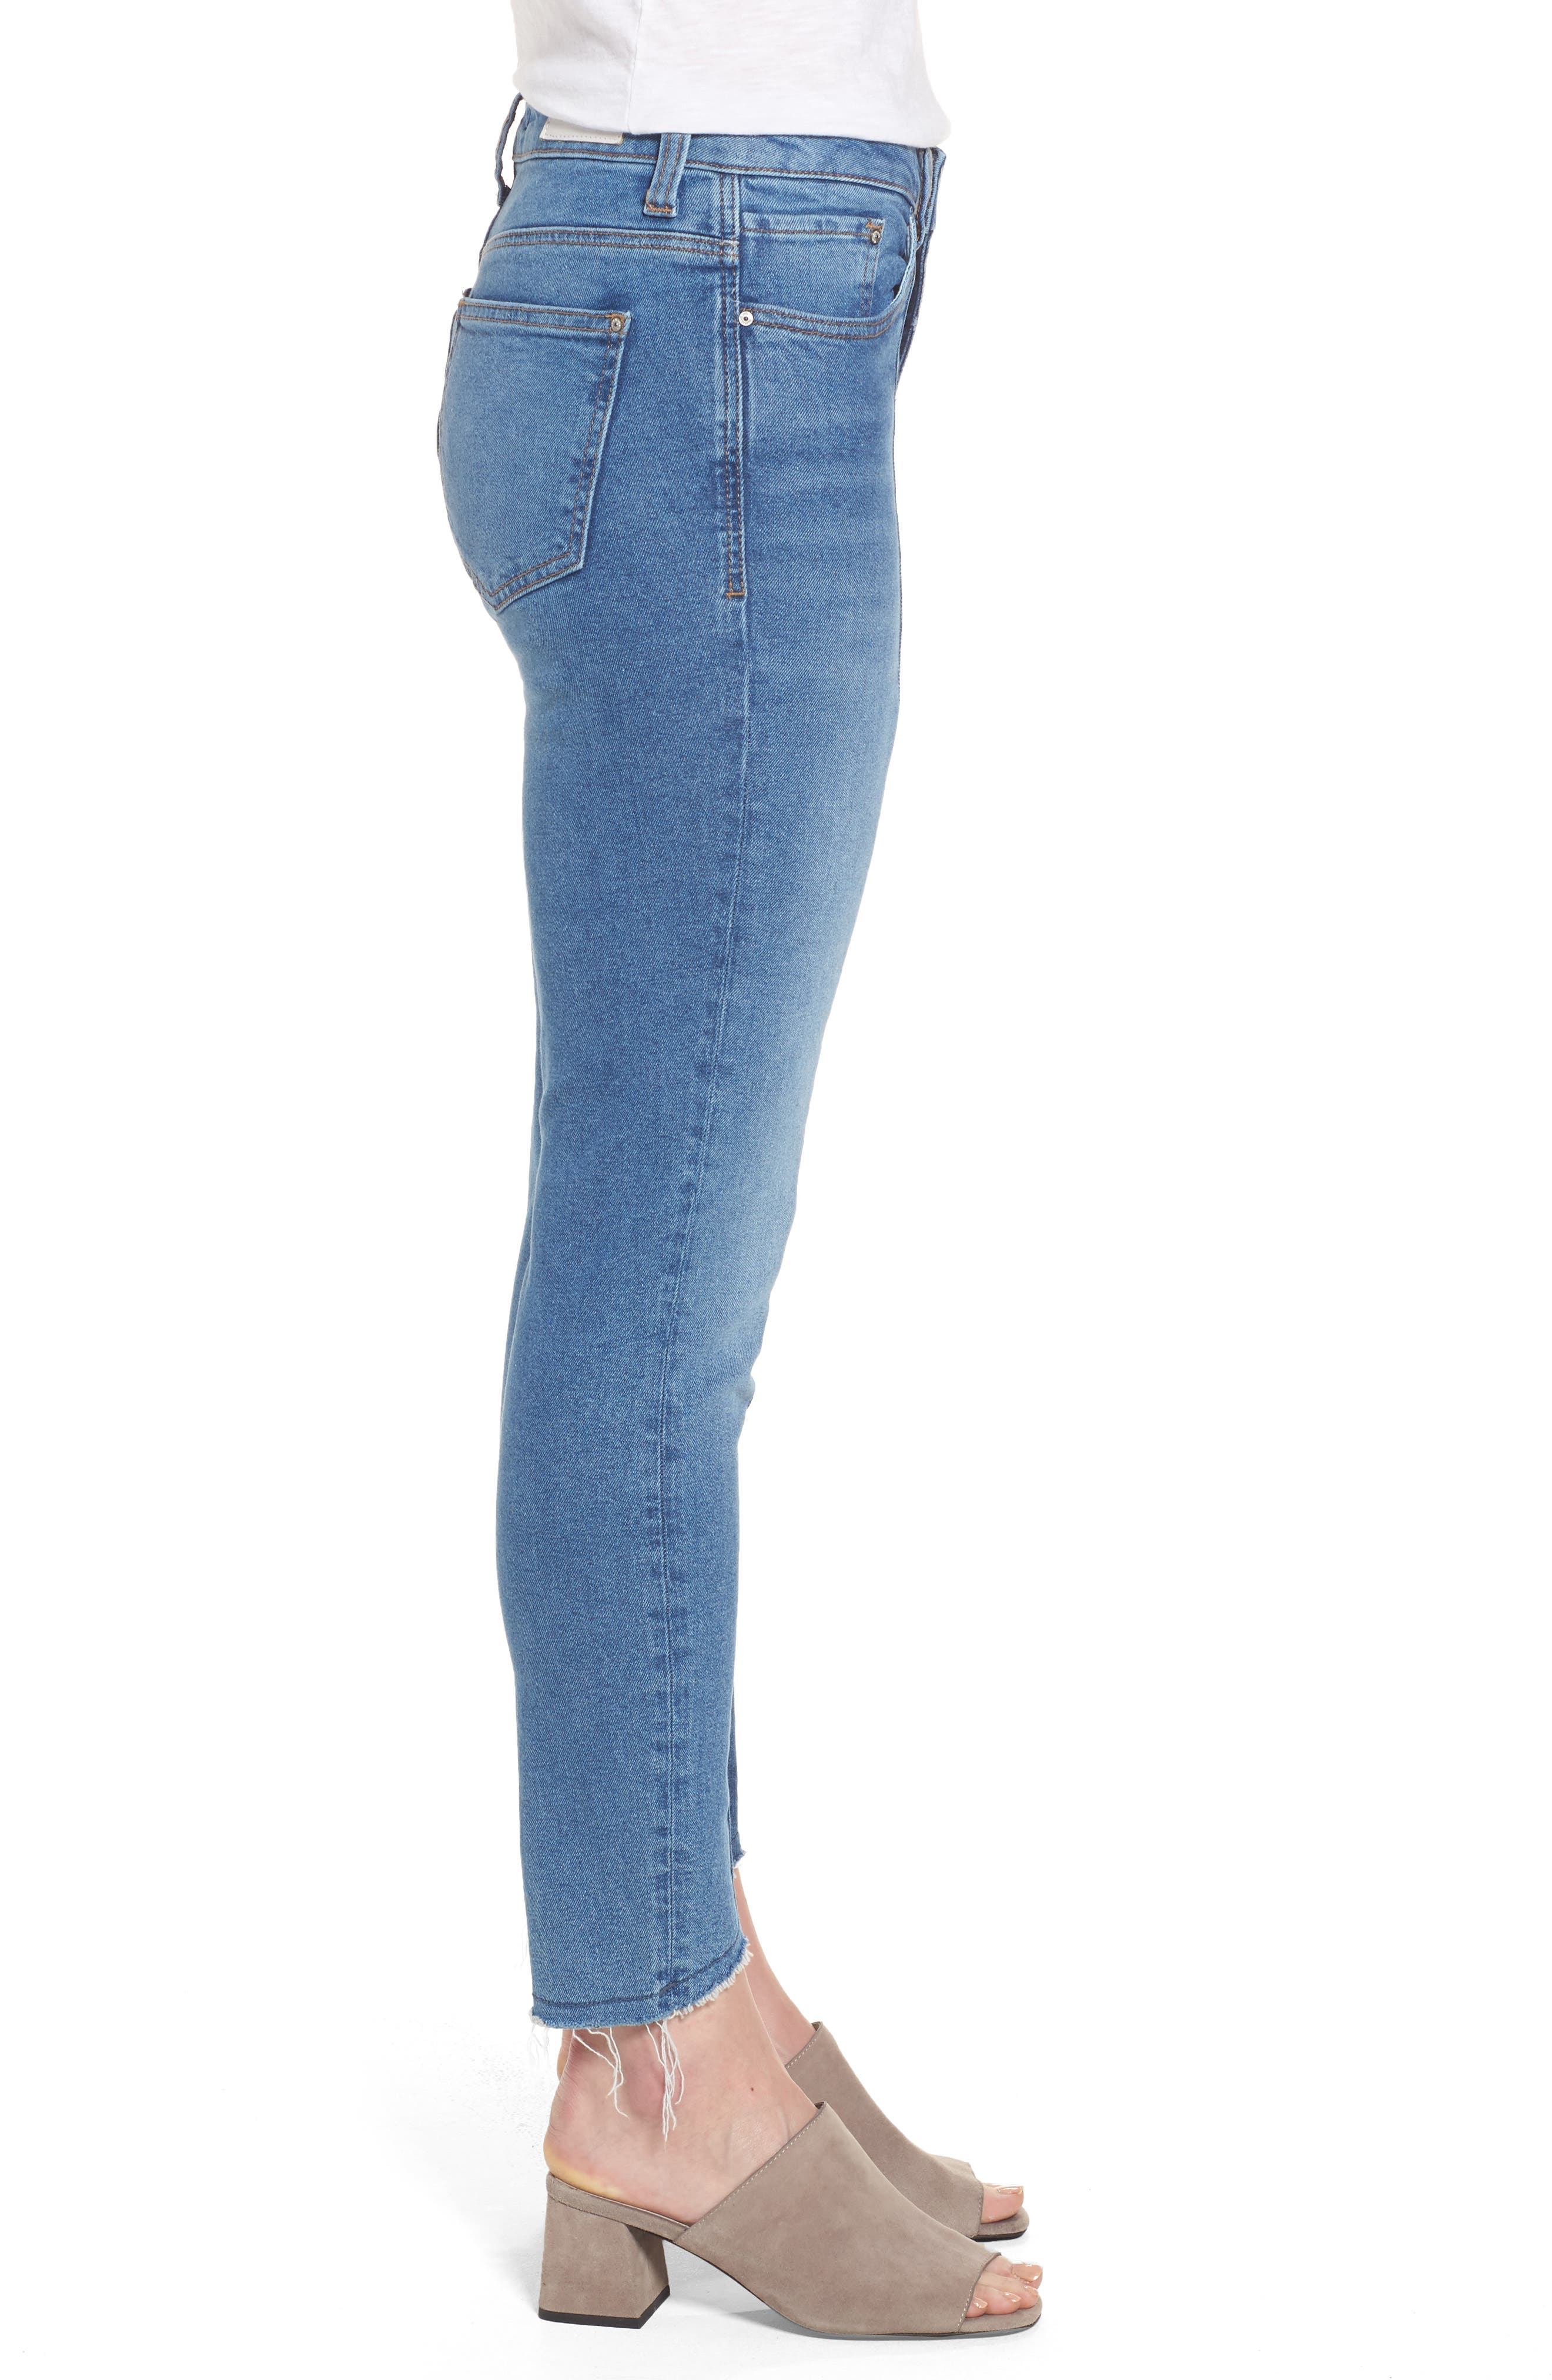 Tess Blocked Super Skinny Jeans,                             Alternate thumbnail 3, color,                             Mid Shaded Blocking Gold Icon